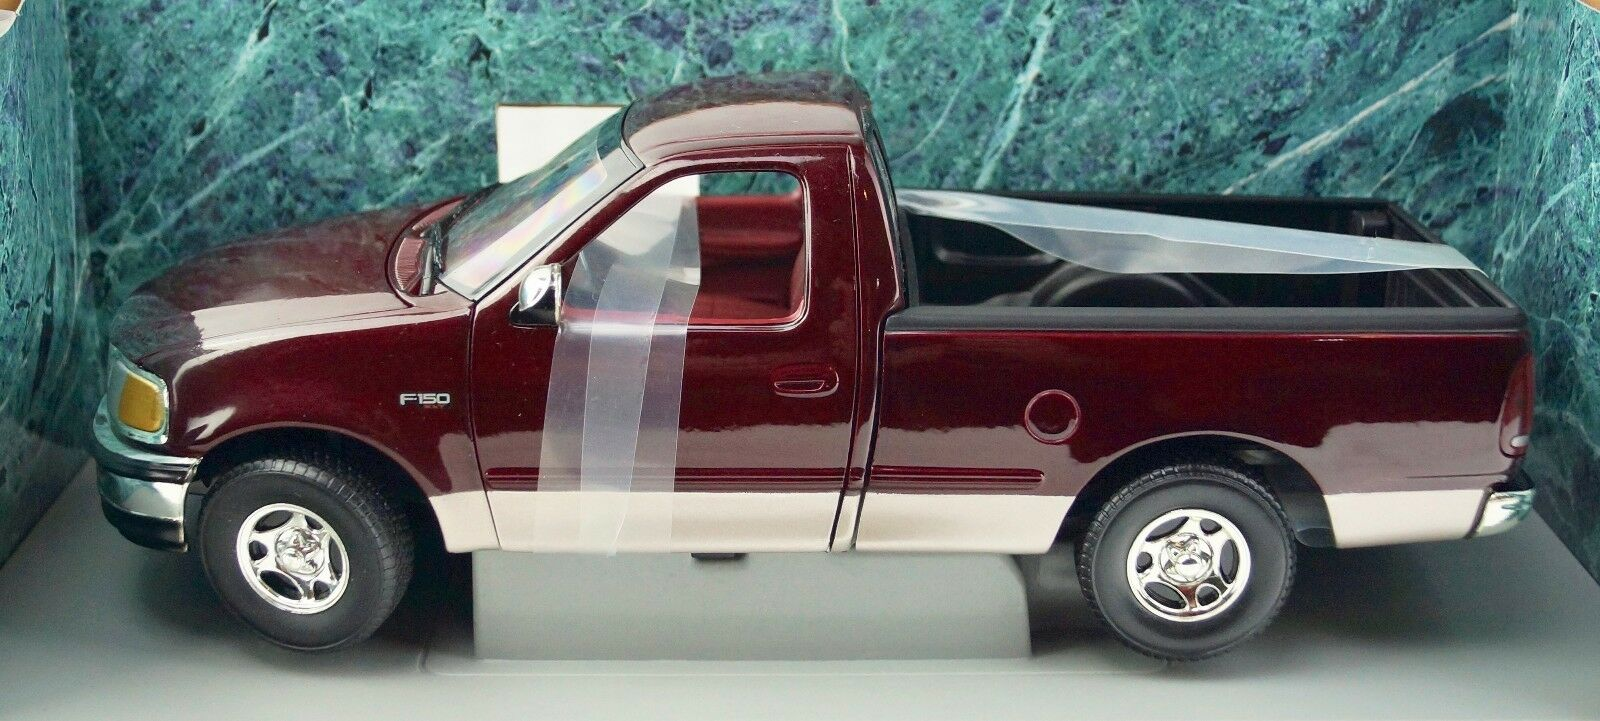 1997 Ford F150 Xlt 1 18 American American American Muscle Collector's Edition, Nuevo 3ce488